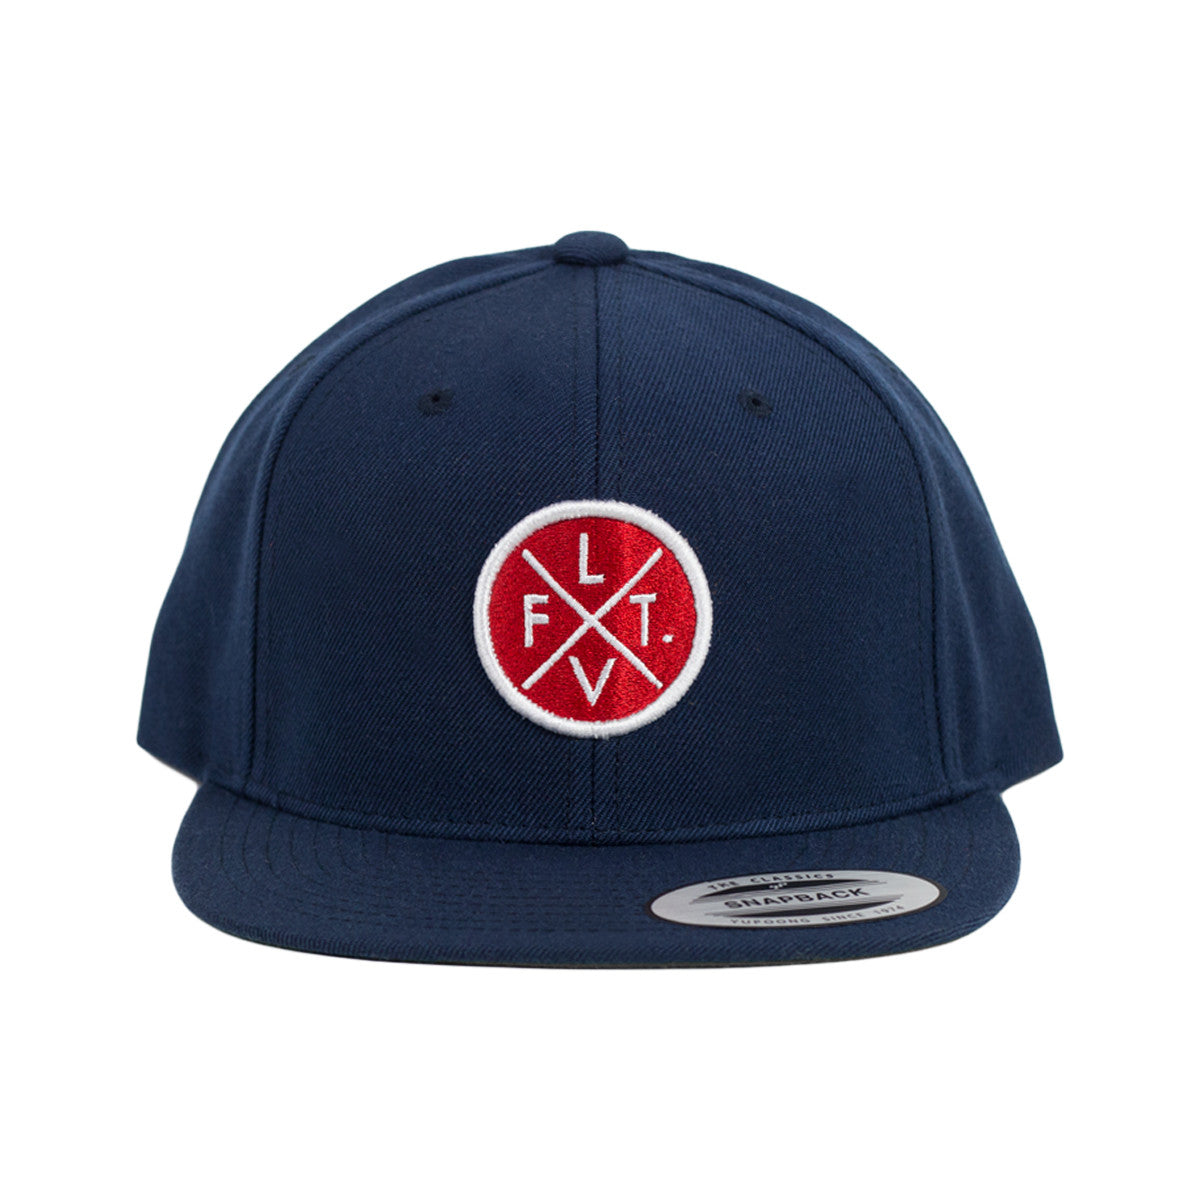 Prestige Worldwide Snapback - Navy